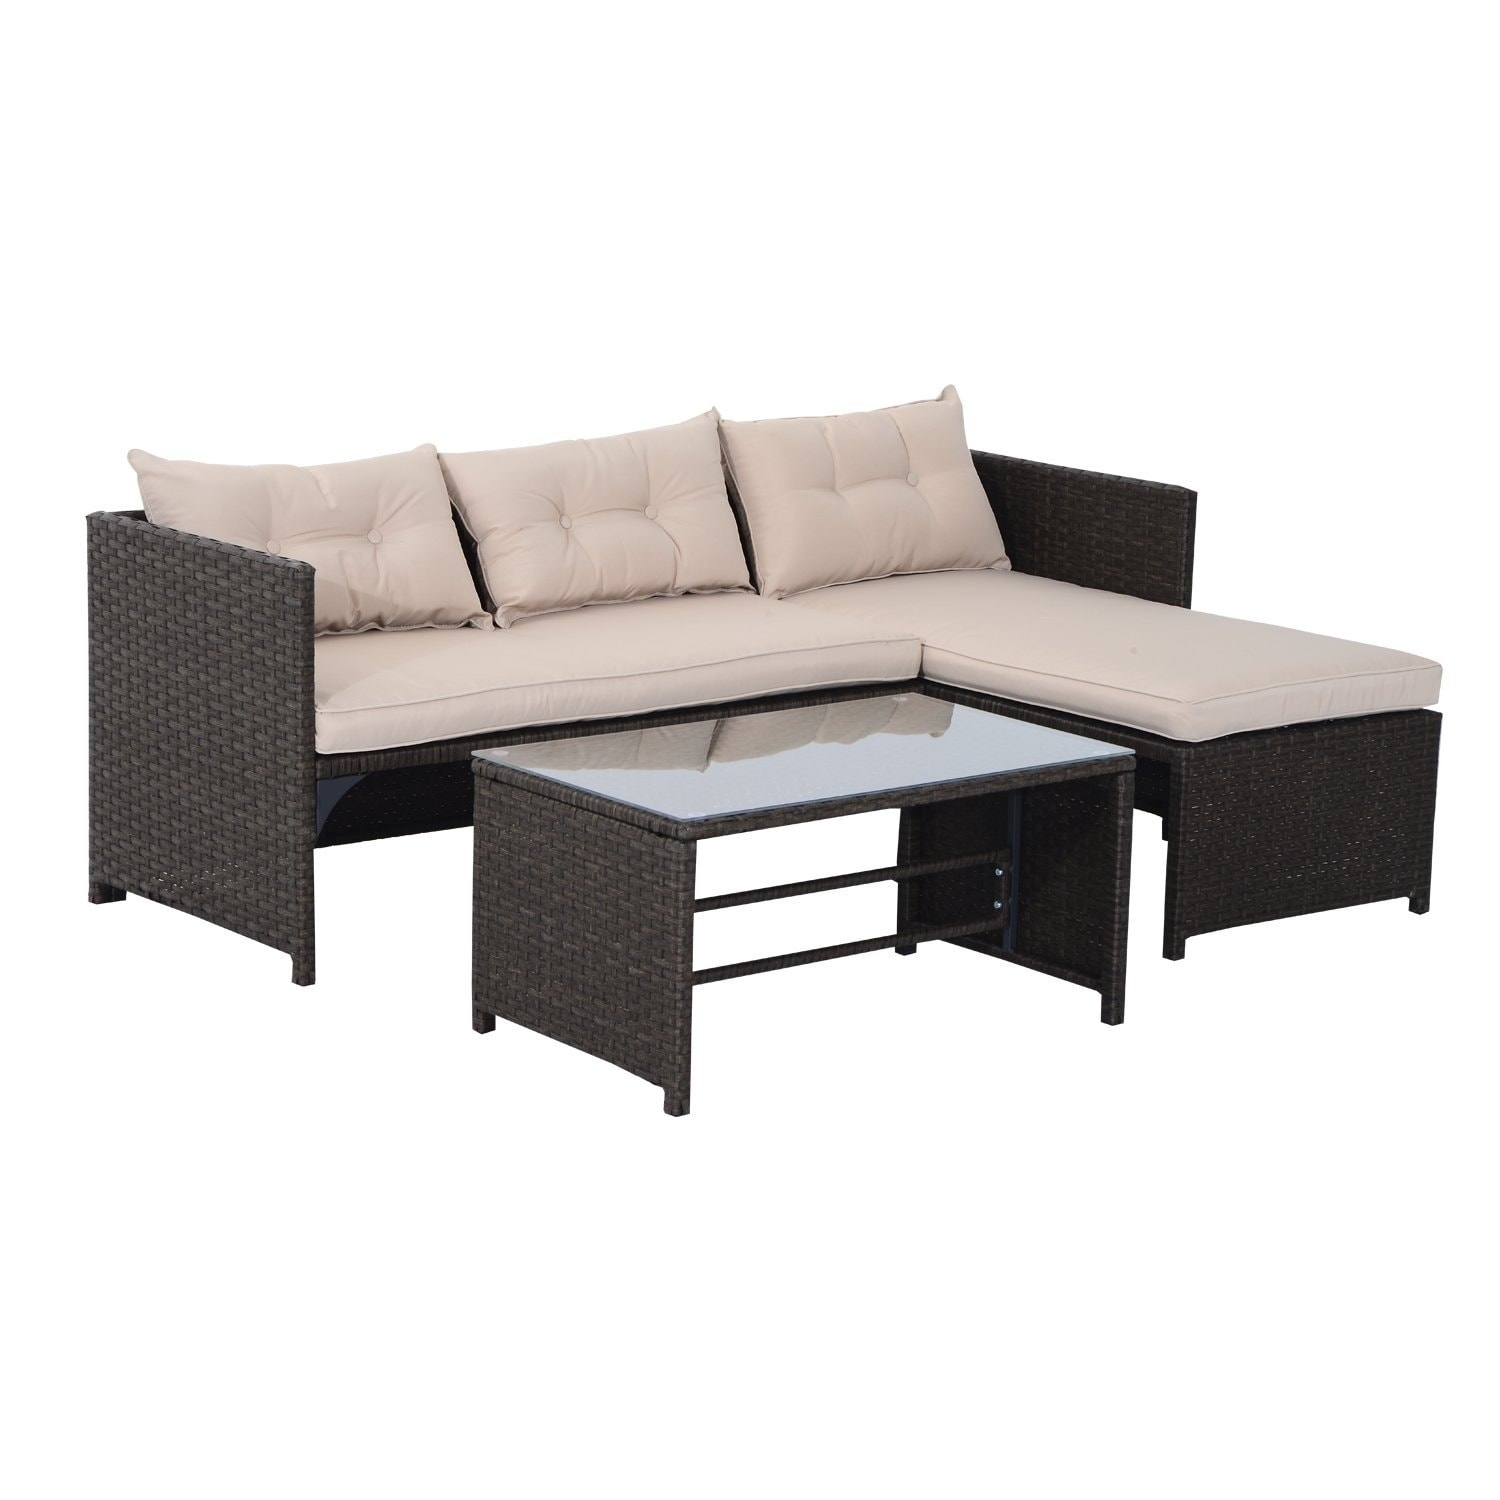 Outsunny Brown Tan Rattan Wicker 3 Piece Outdoor Patio Sofa And Chaise Lounge Set Free Shipping Today 22223290